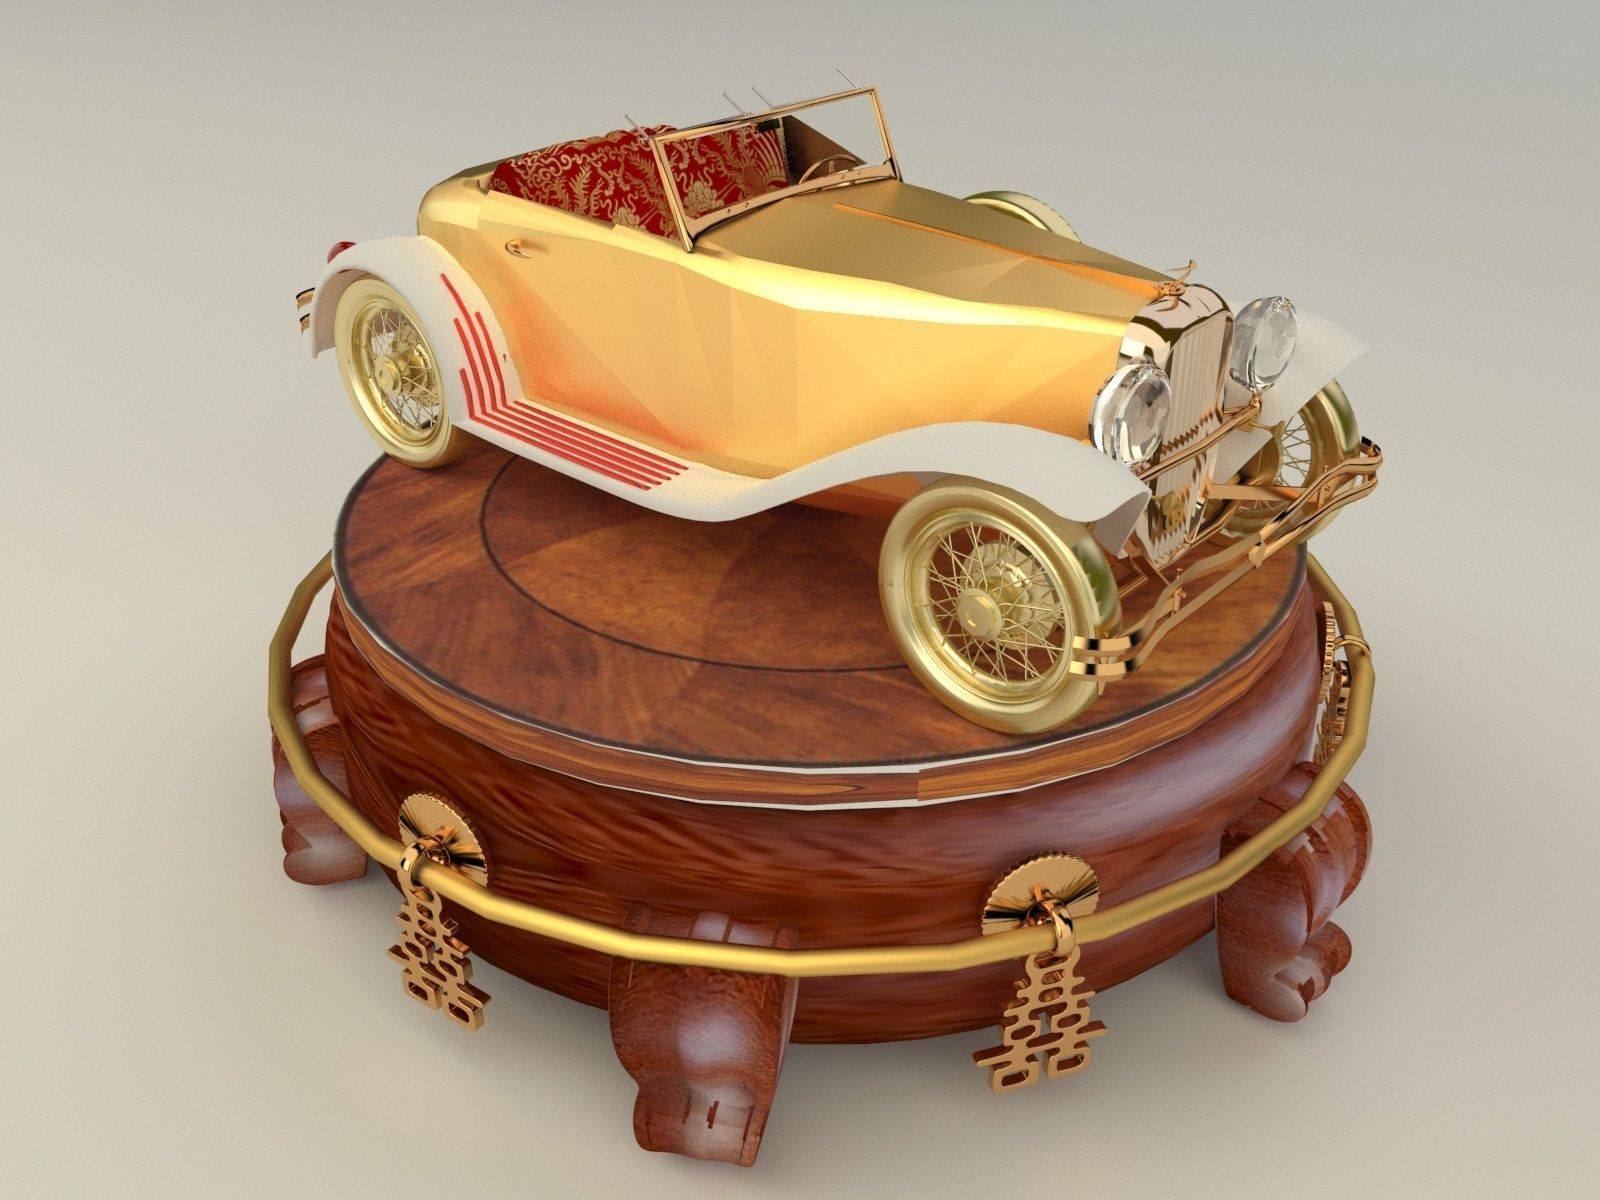 Chinese Display Stand With Classic Car 3d Cgtrader Free 3d arrow models for download, files in 3ds, max, c4d, maya, blend, obj, fbx with low poly, animated, rigged, game, and vr options. cgtrader